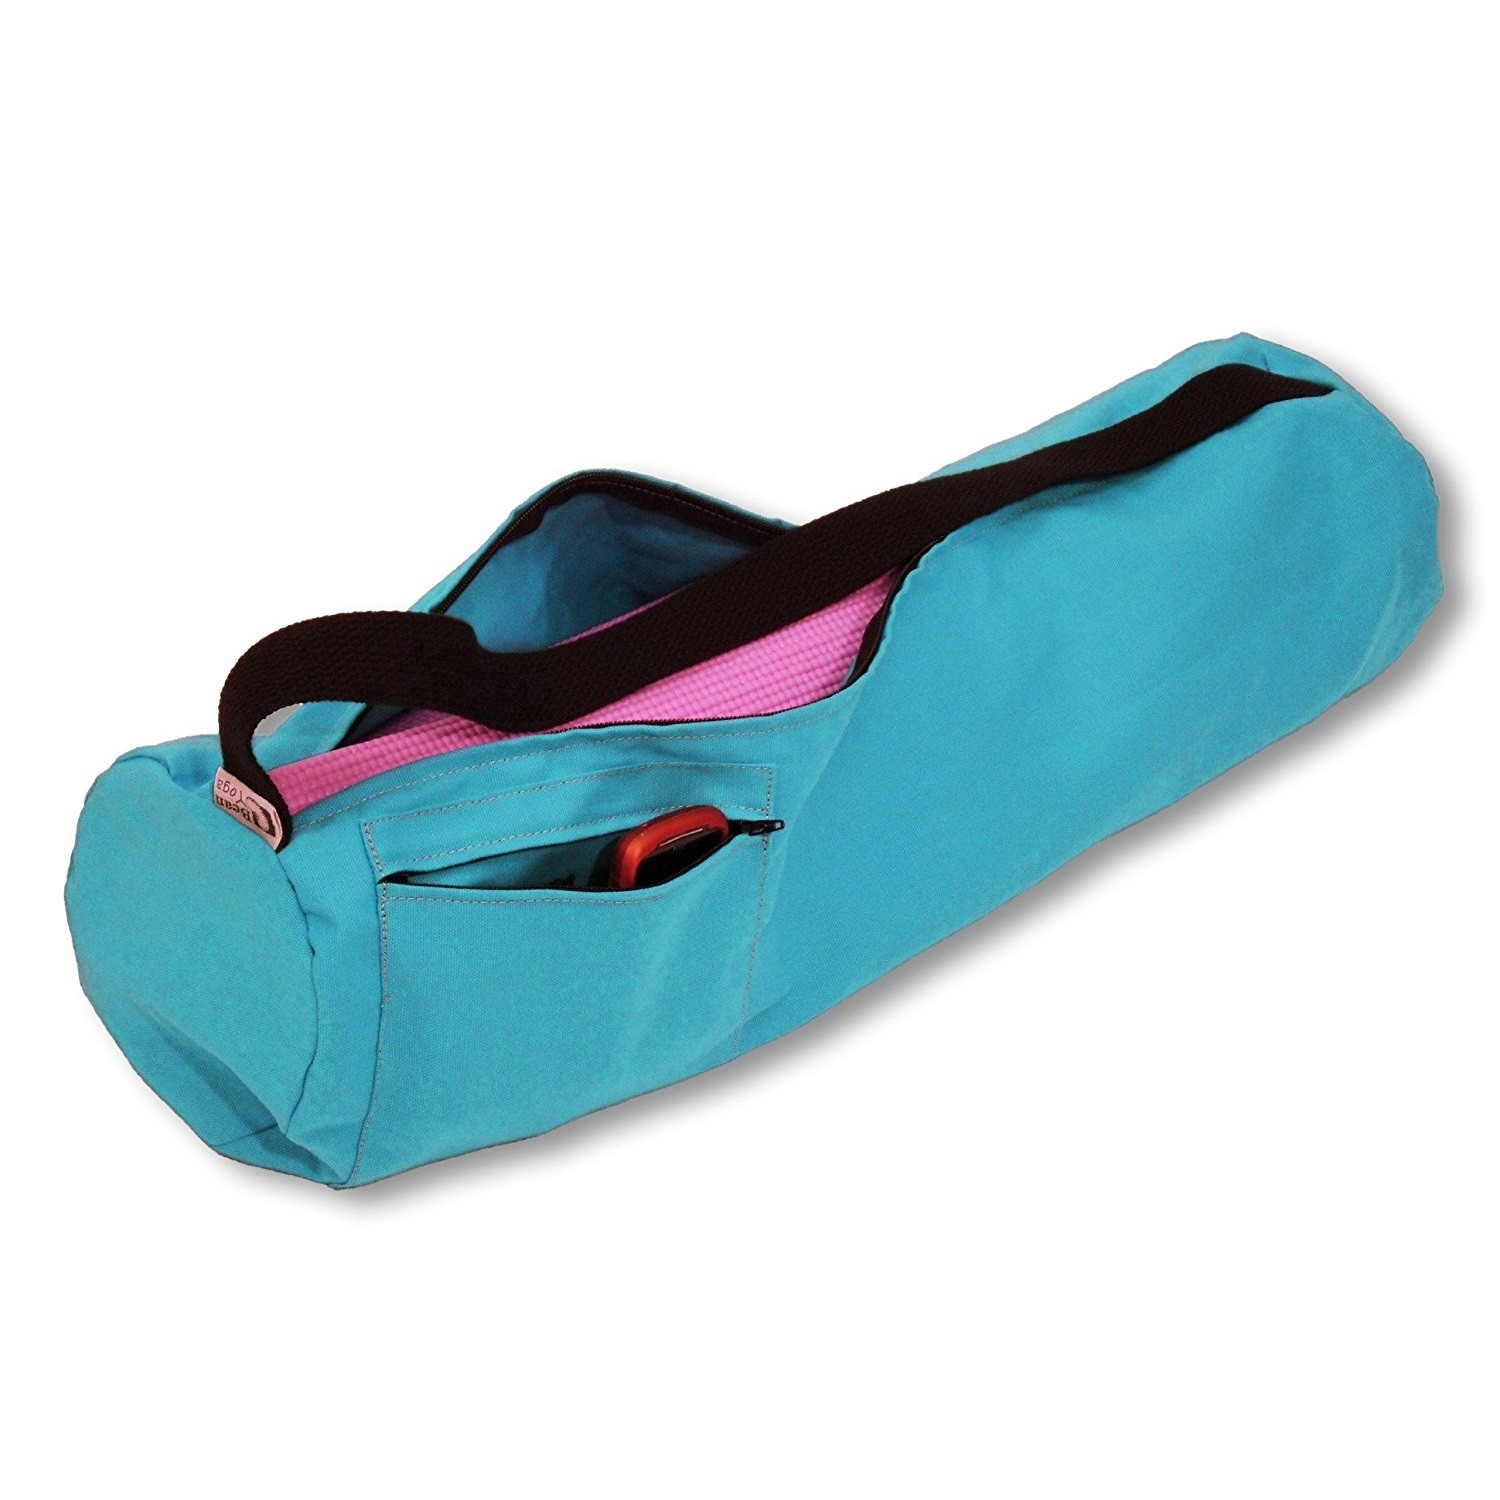 bean products yoga mat bag extra large 100% cotton aqua